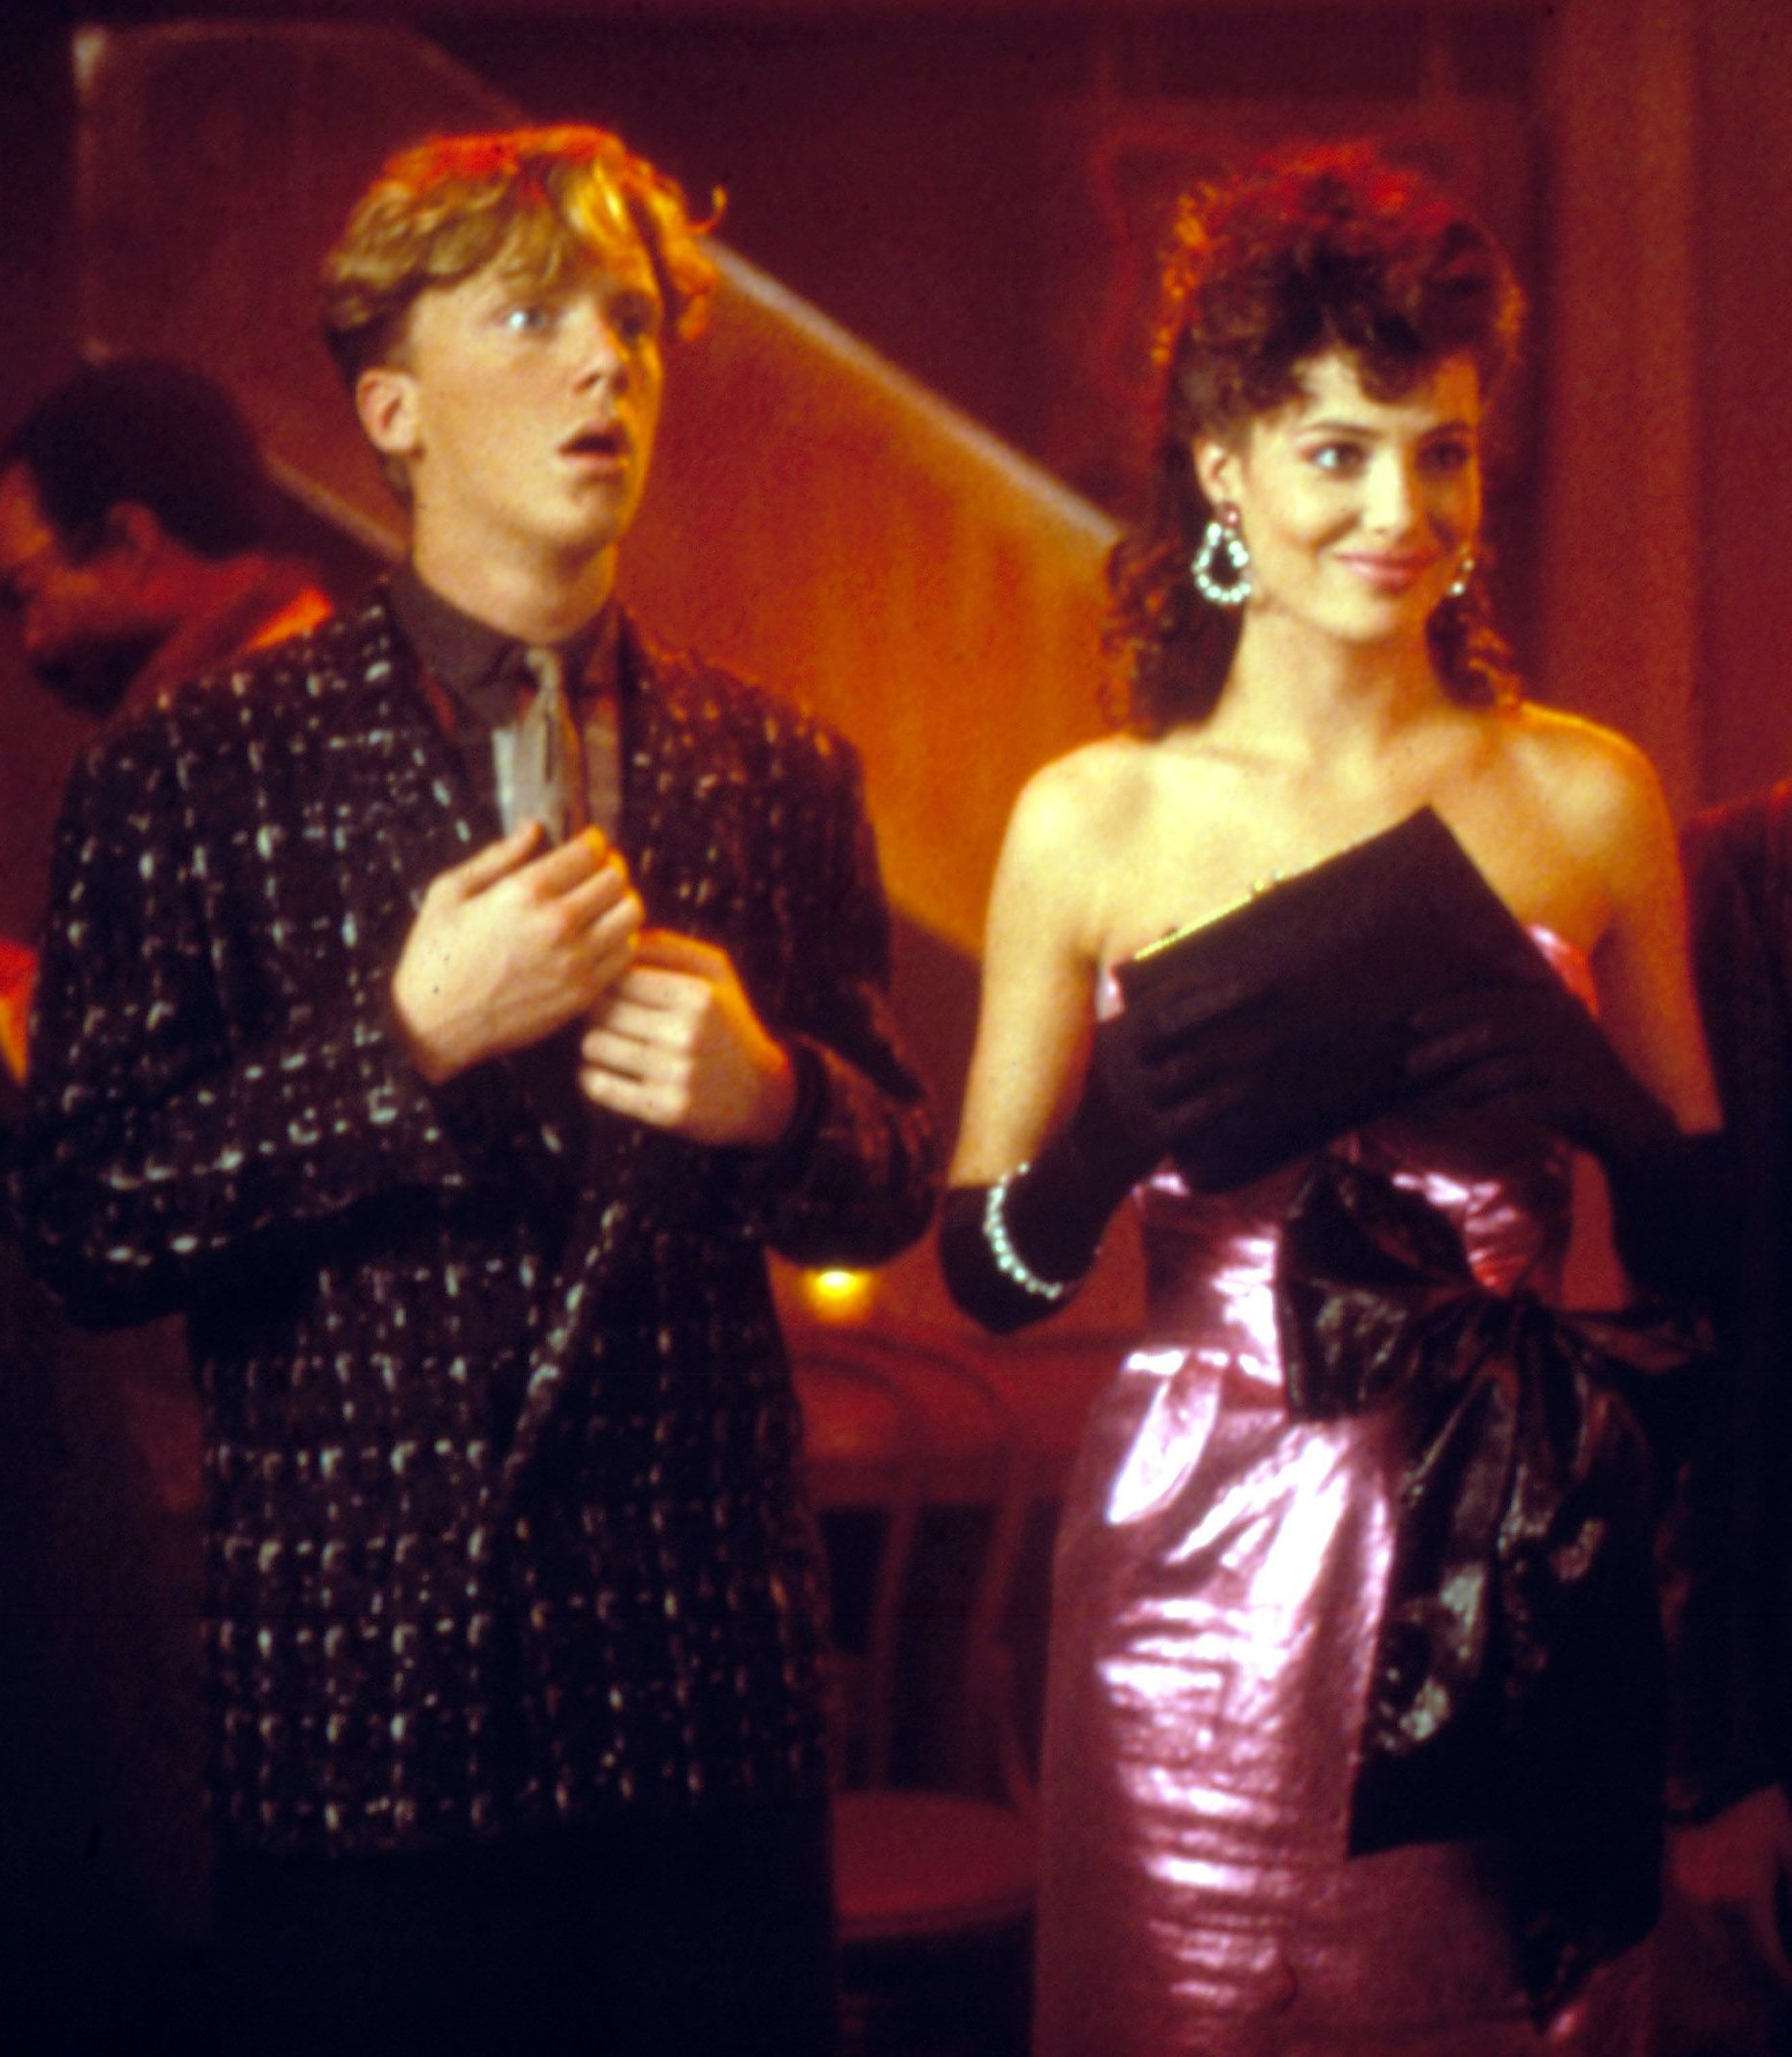 movies weird science 20 Things You Probably Didn't Know About Ferris Bueller's Day Off